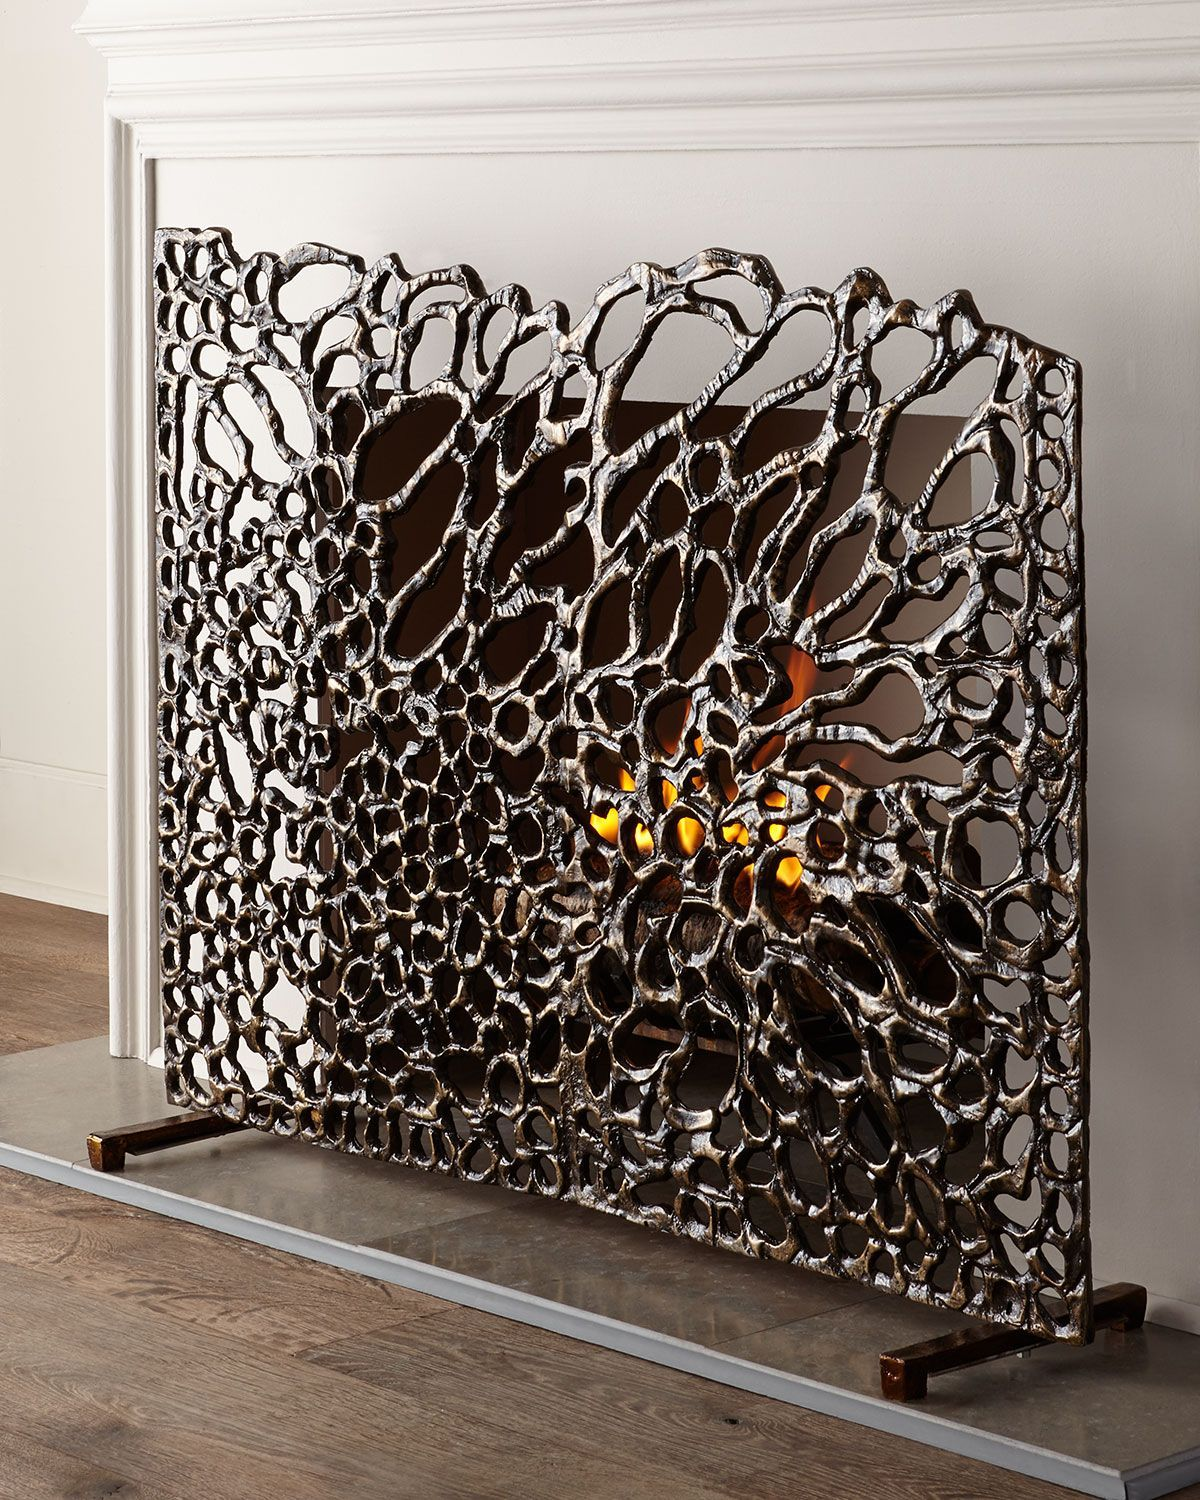 Organic bronze fireplace screen fireplace screens Decorative fireplace screens